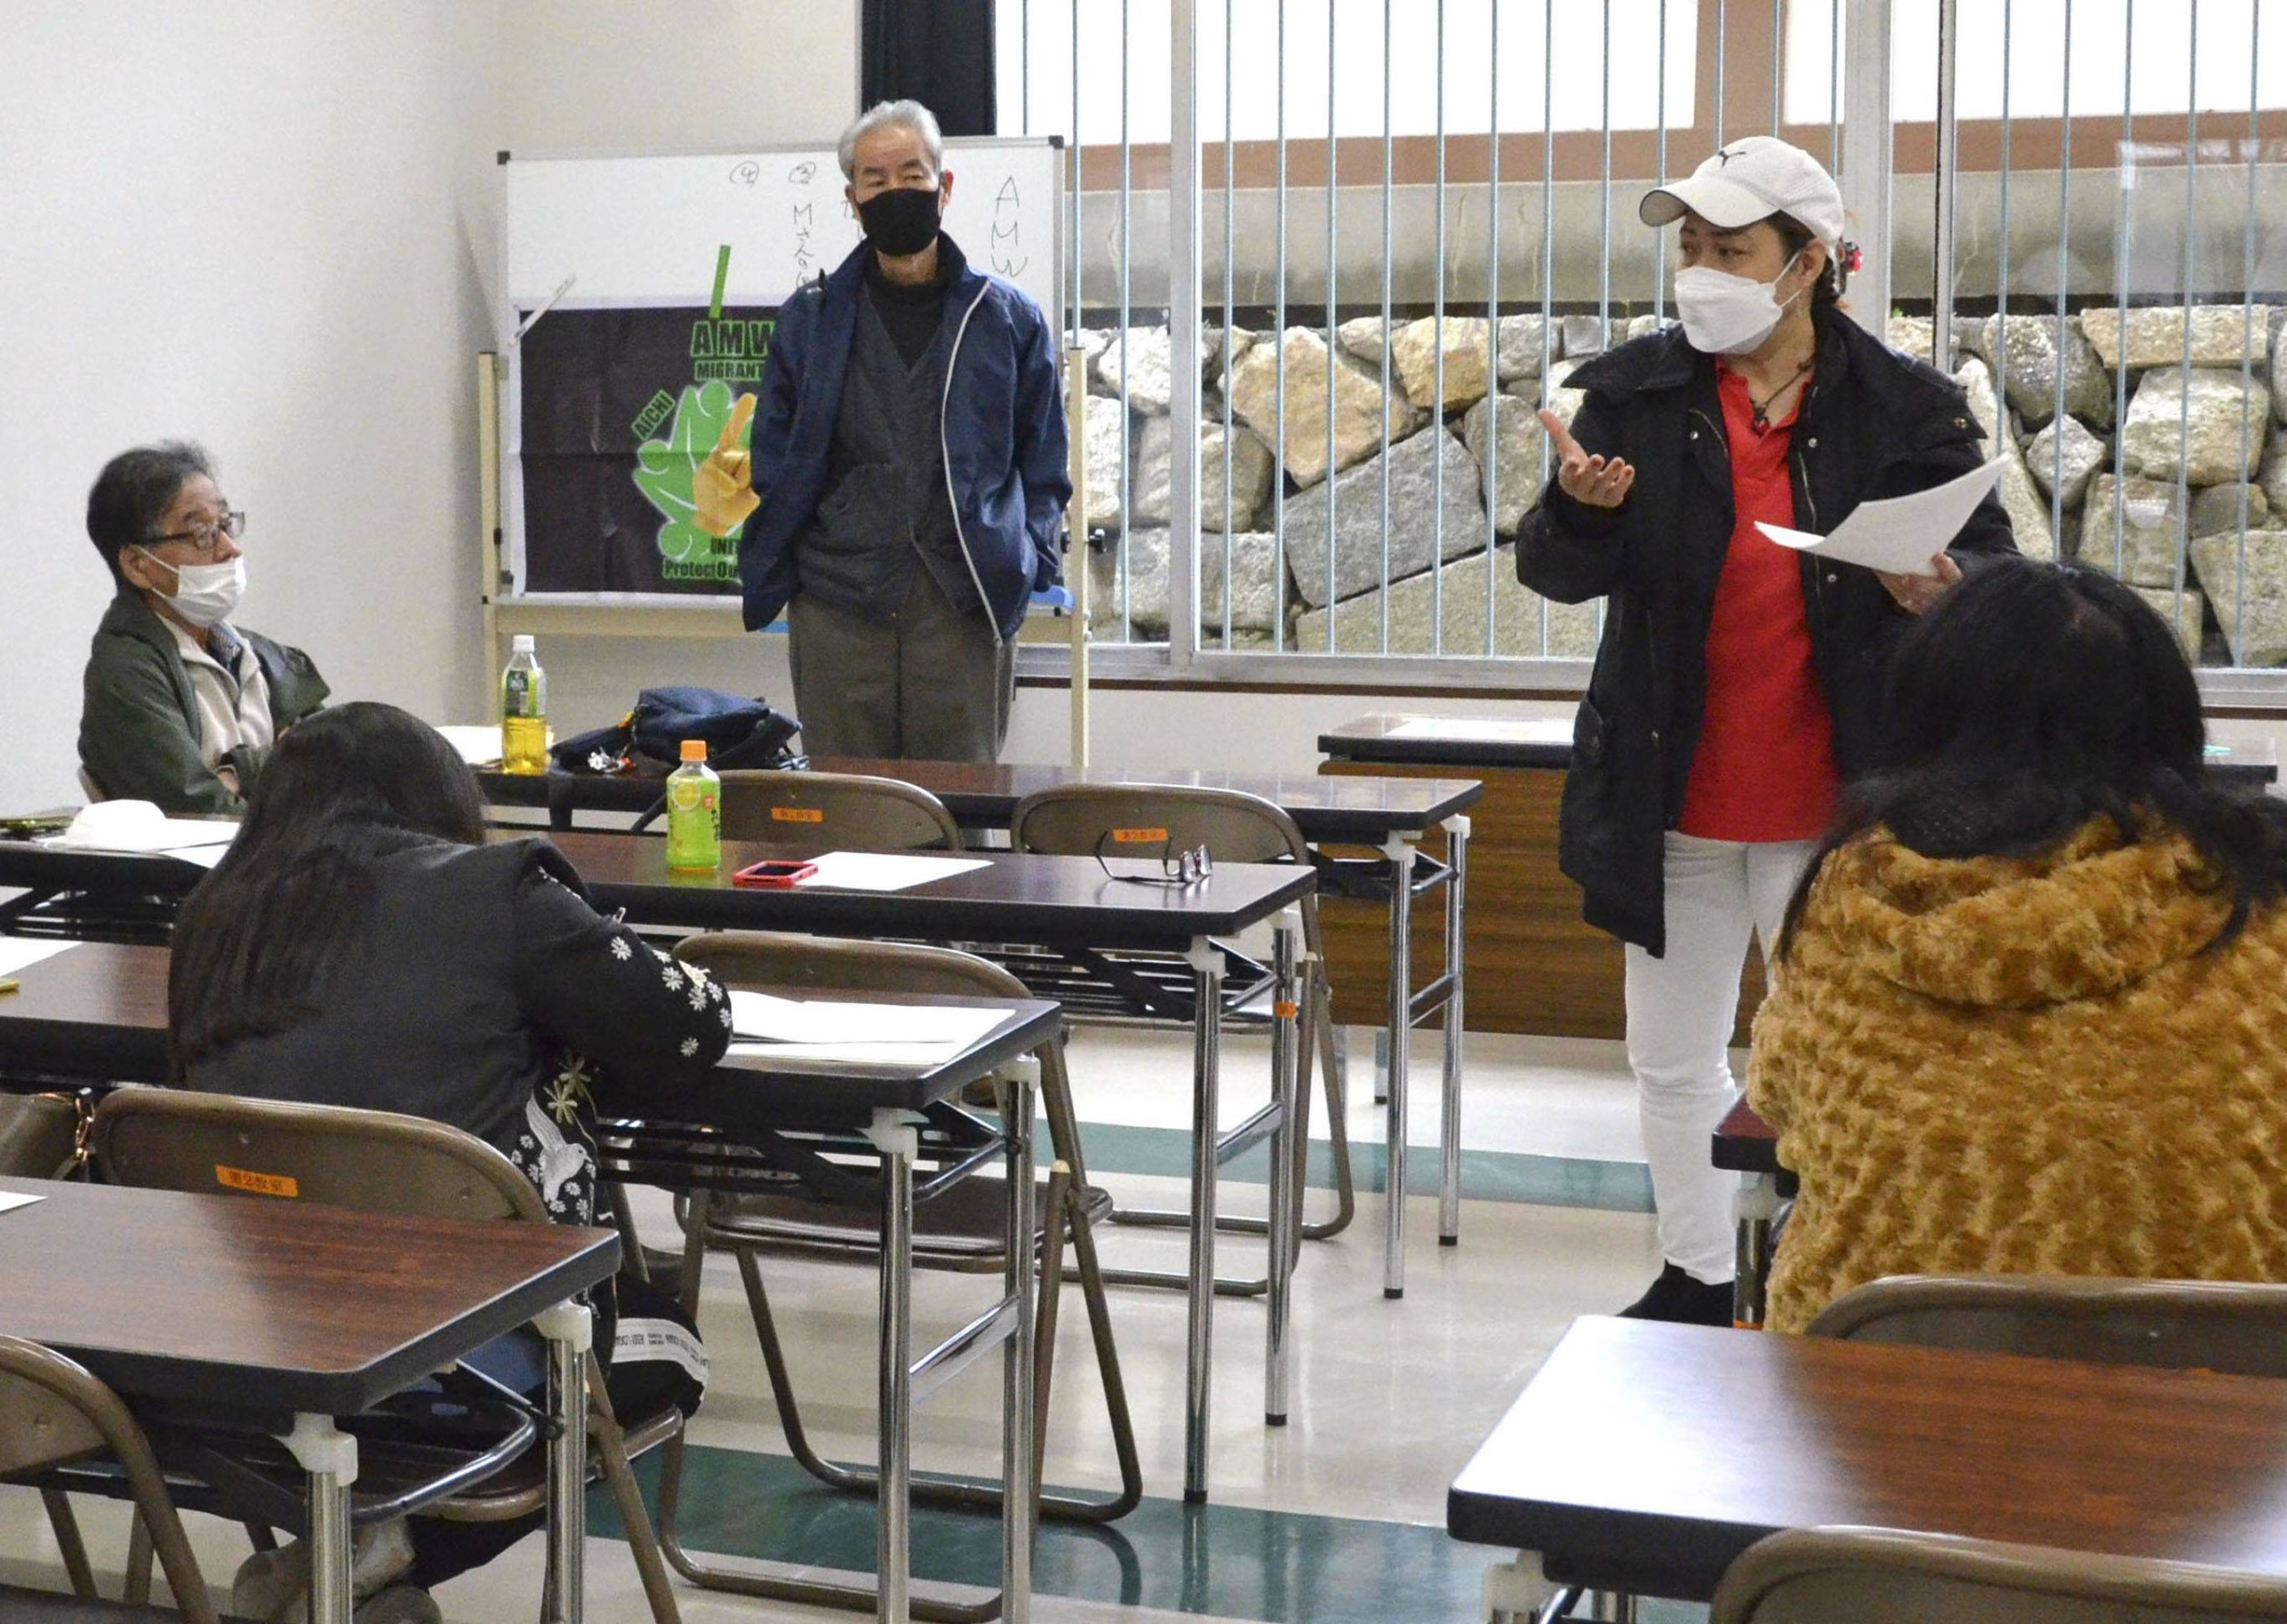 Members of Aichi Migrants Workers and Union Aichi gather to study labor laws in Nagoya on Feb. 14. | KYODO